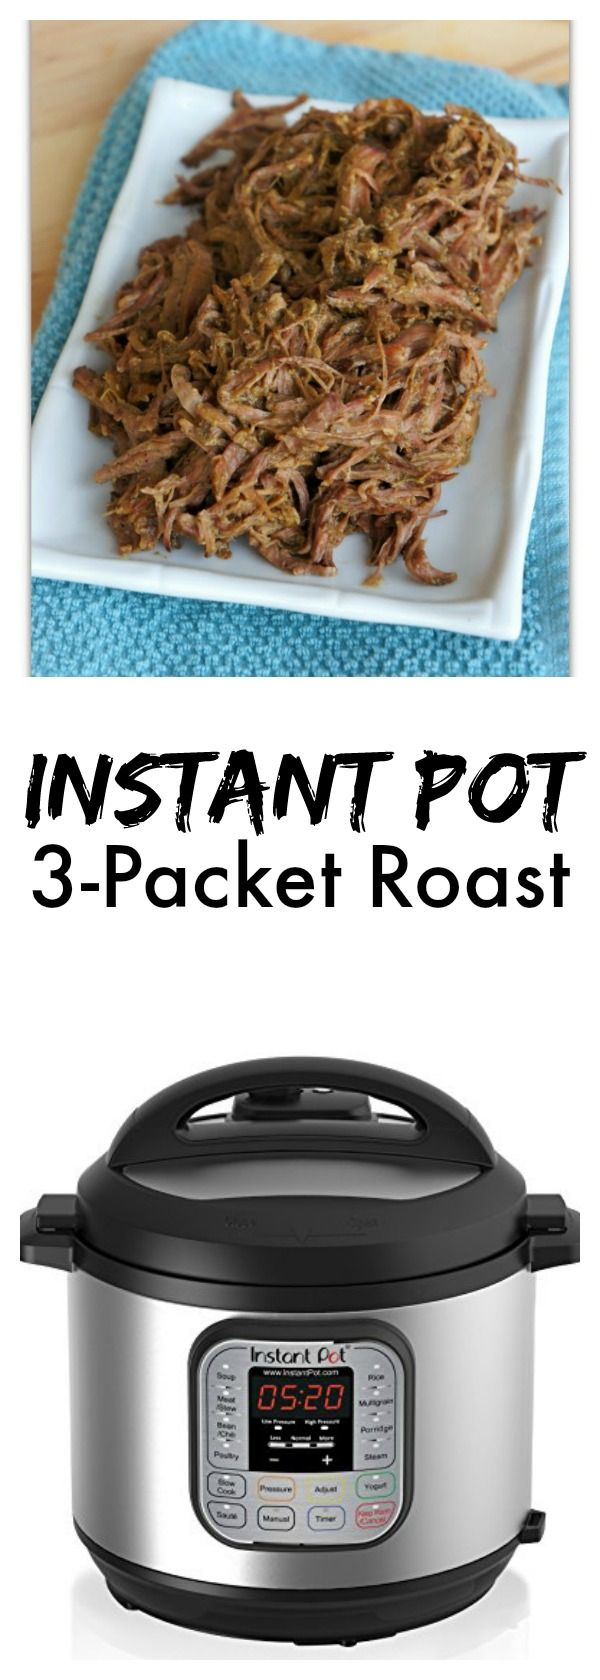 "Instant Pot 3 Packet Roast–a super easy and fast way to make an incredibly tender and flavored roast. You'll just need a packet of ranch, Italian dressing mix and brown gravy along with a chuck roast for this recipe. If you prefer to make homemade versions of these ""packets"" I have those recipes for you too!"